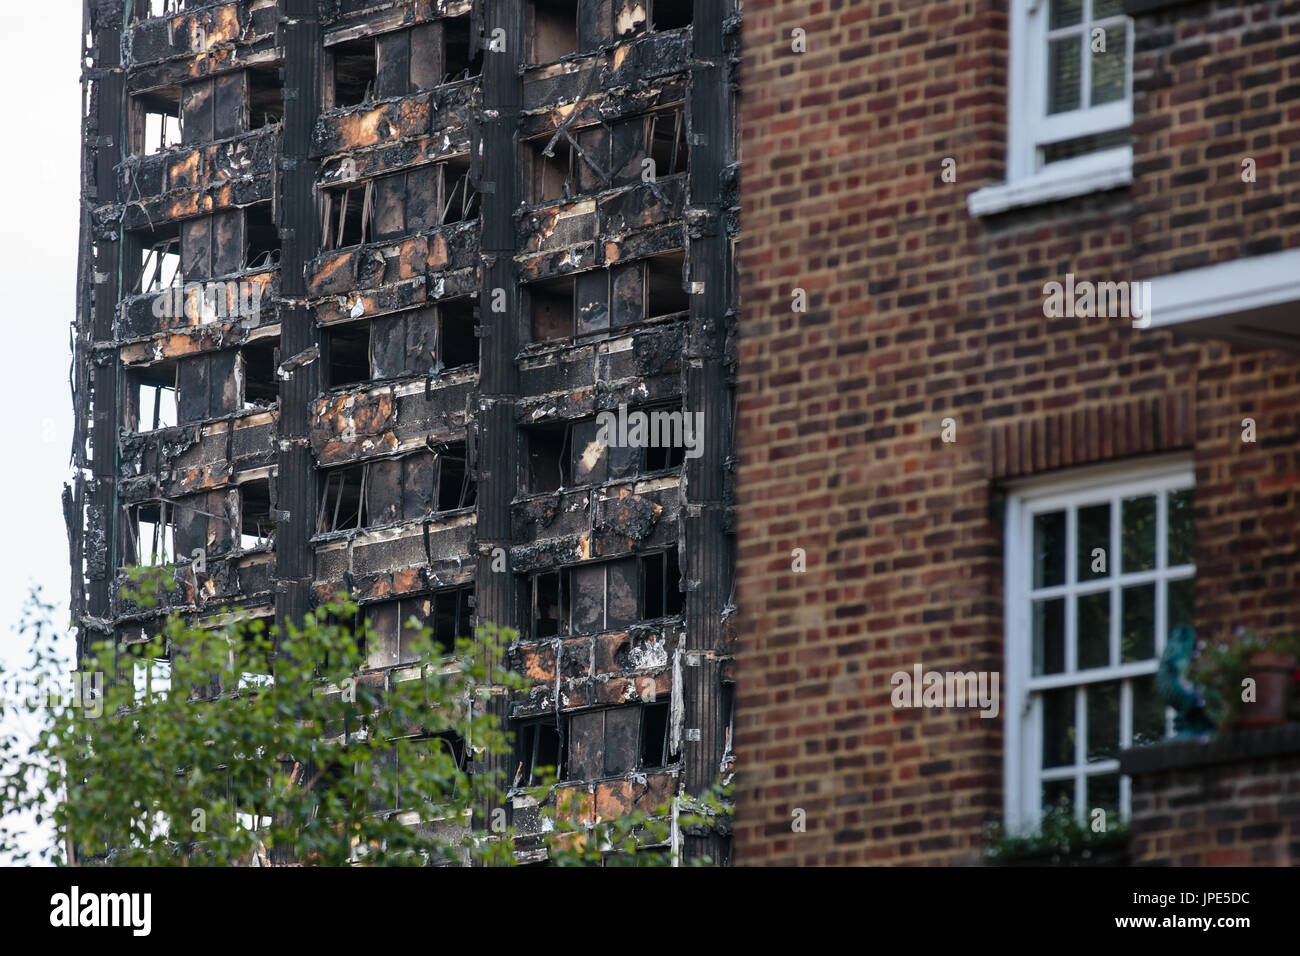 Close up view of the remains of Grenfell Tower, a residential  block of flats. At least 80 people died following a horrific fire on 14th June 2017. - Stock Image